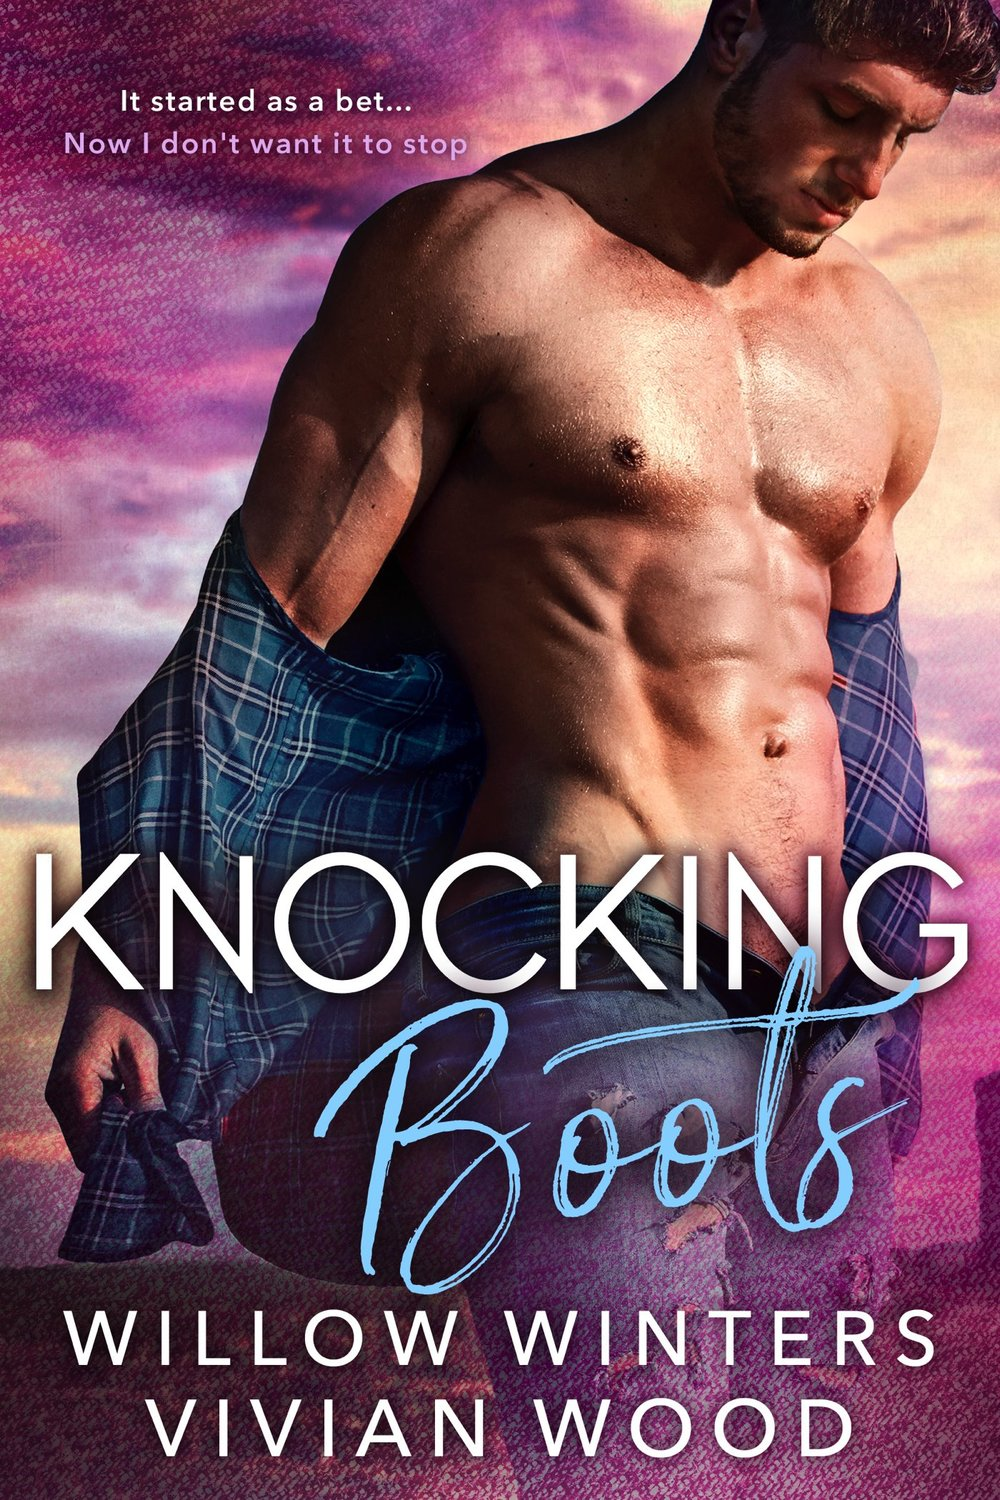 Knocking-Boots-Generic.jpg